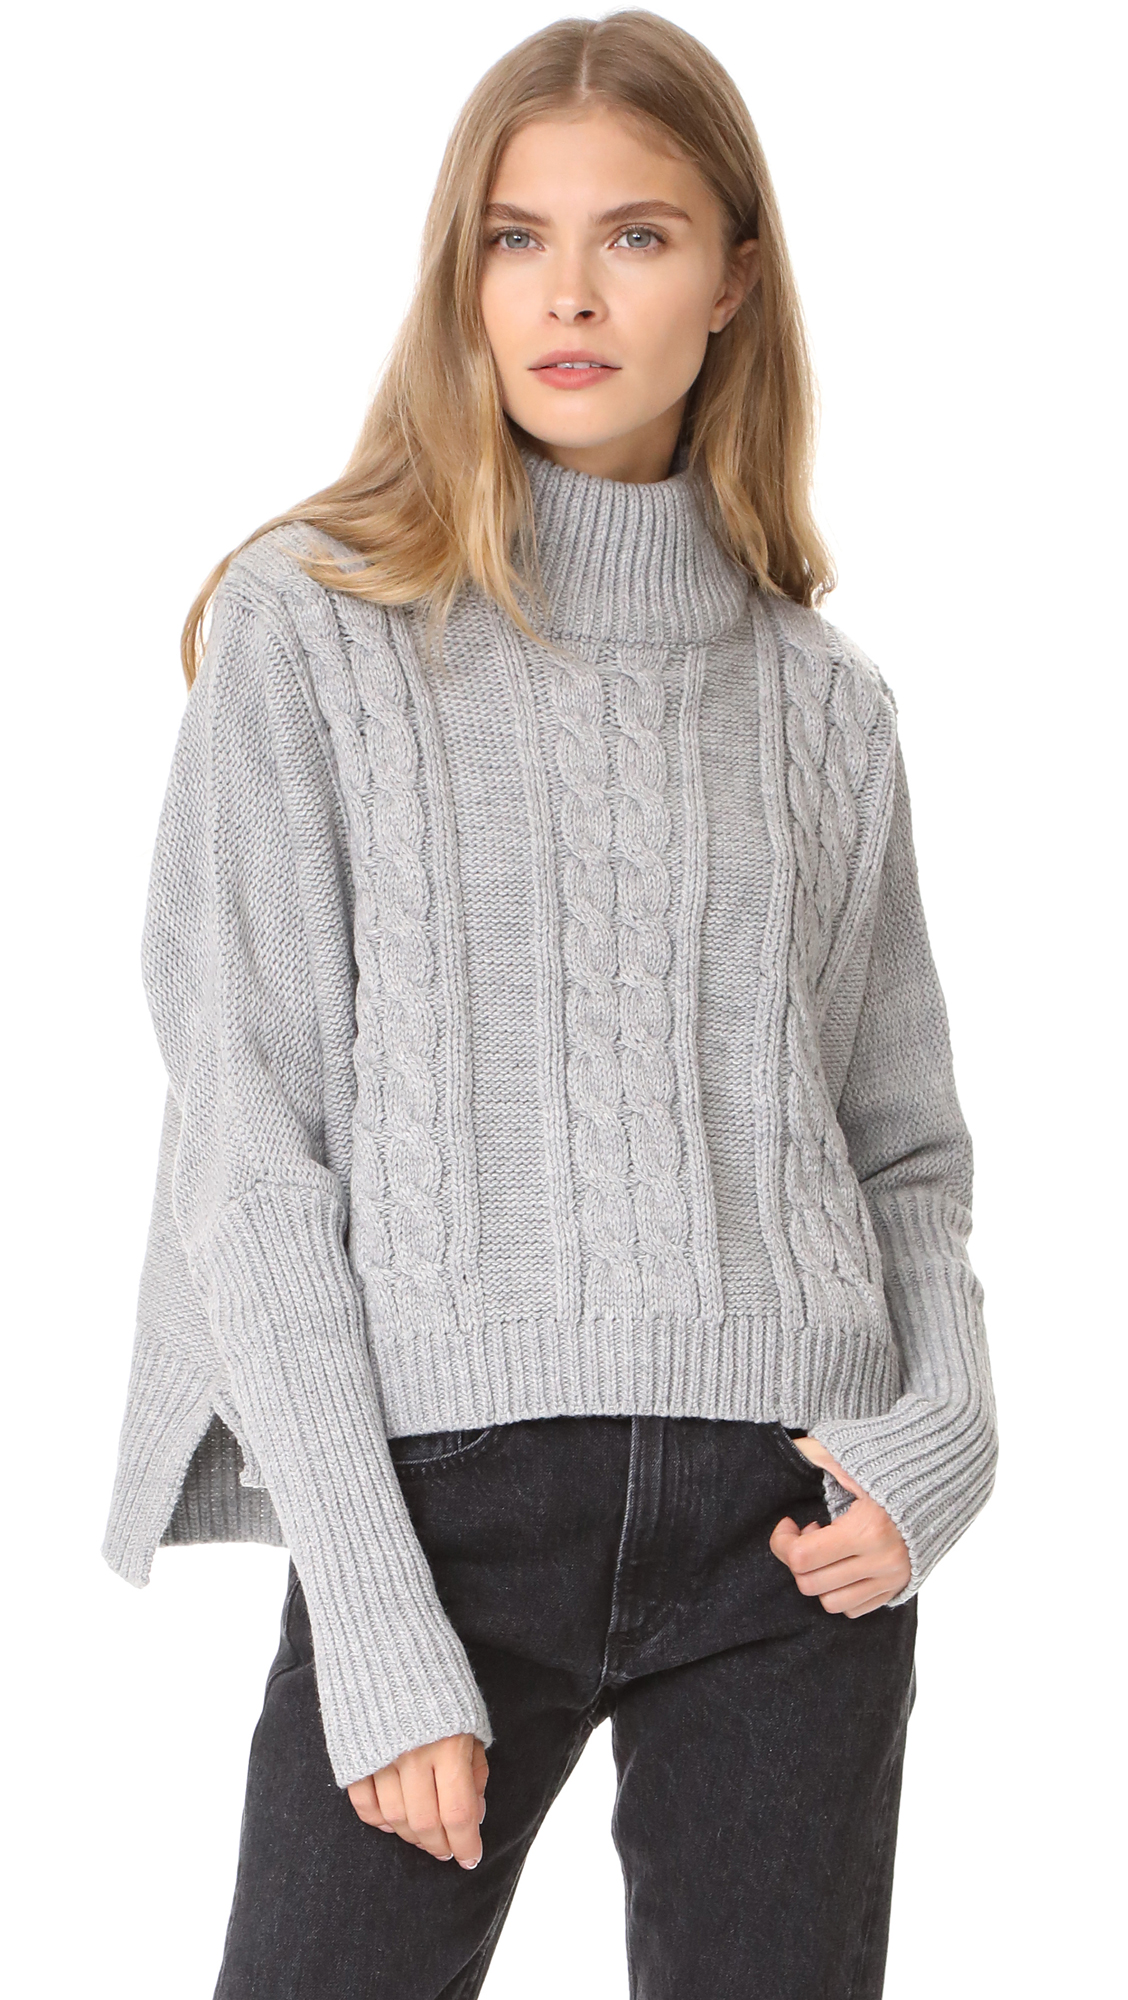 FAITHFULL THE BRAND Merida Knit Sweater - Grey